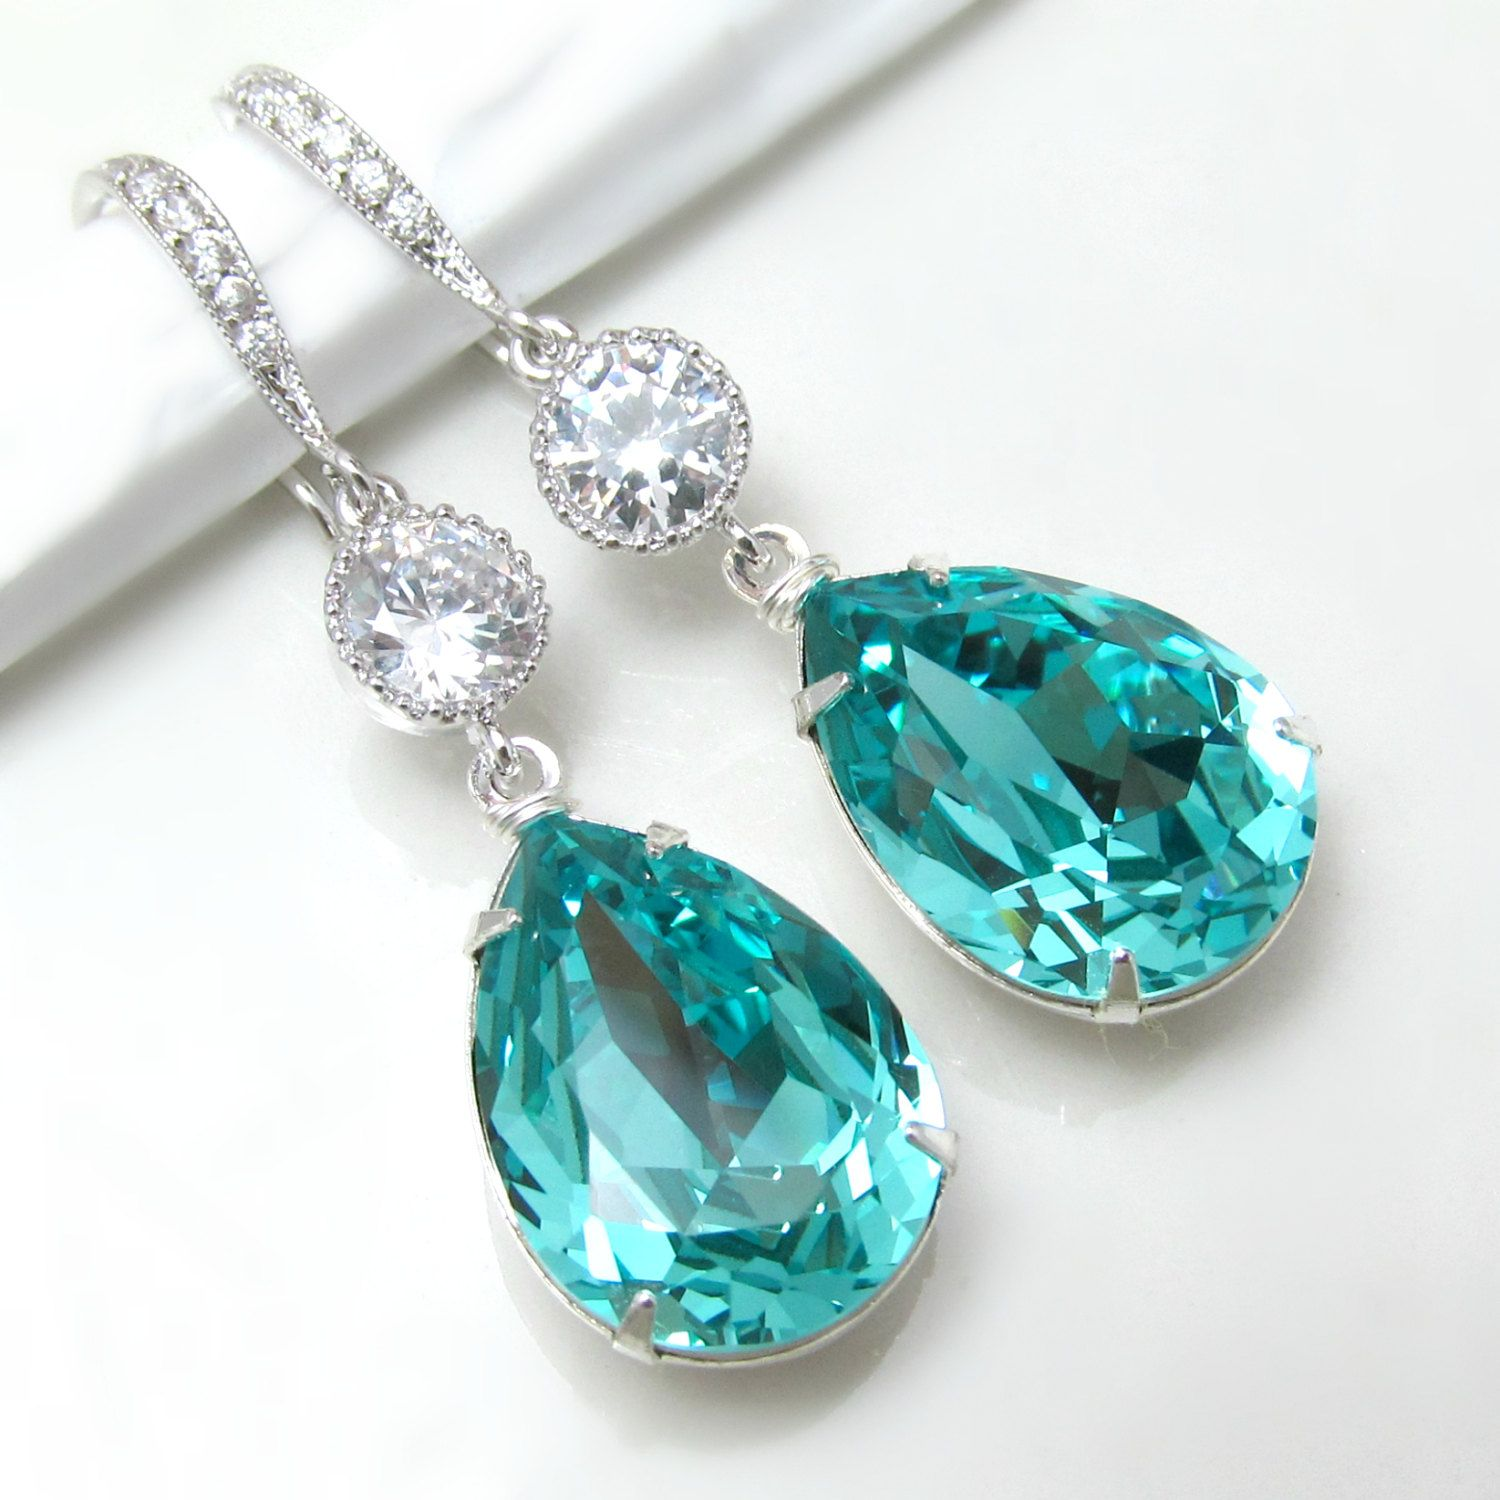 Teal Blue Earrings Swarovski Crystal Light Turquoise Earrings Bridal